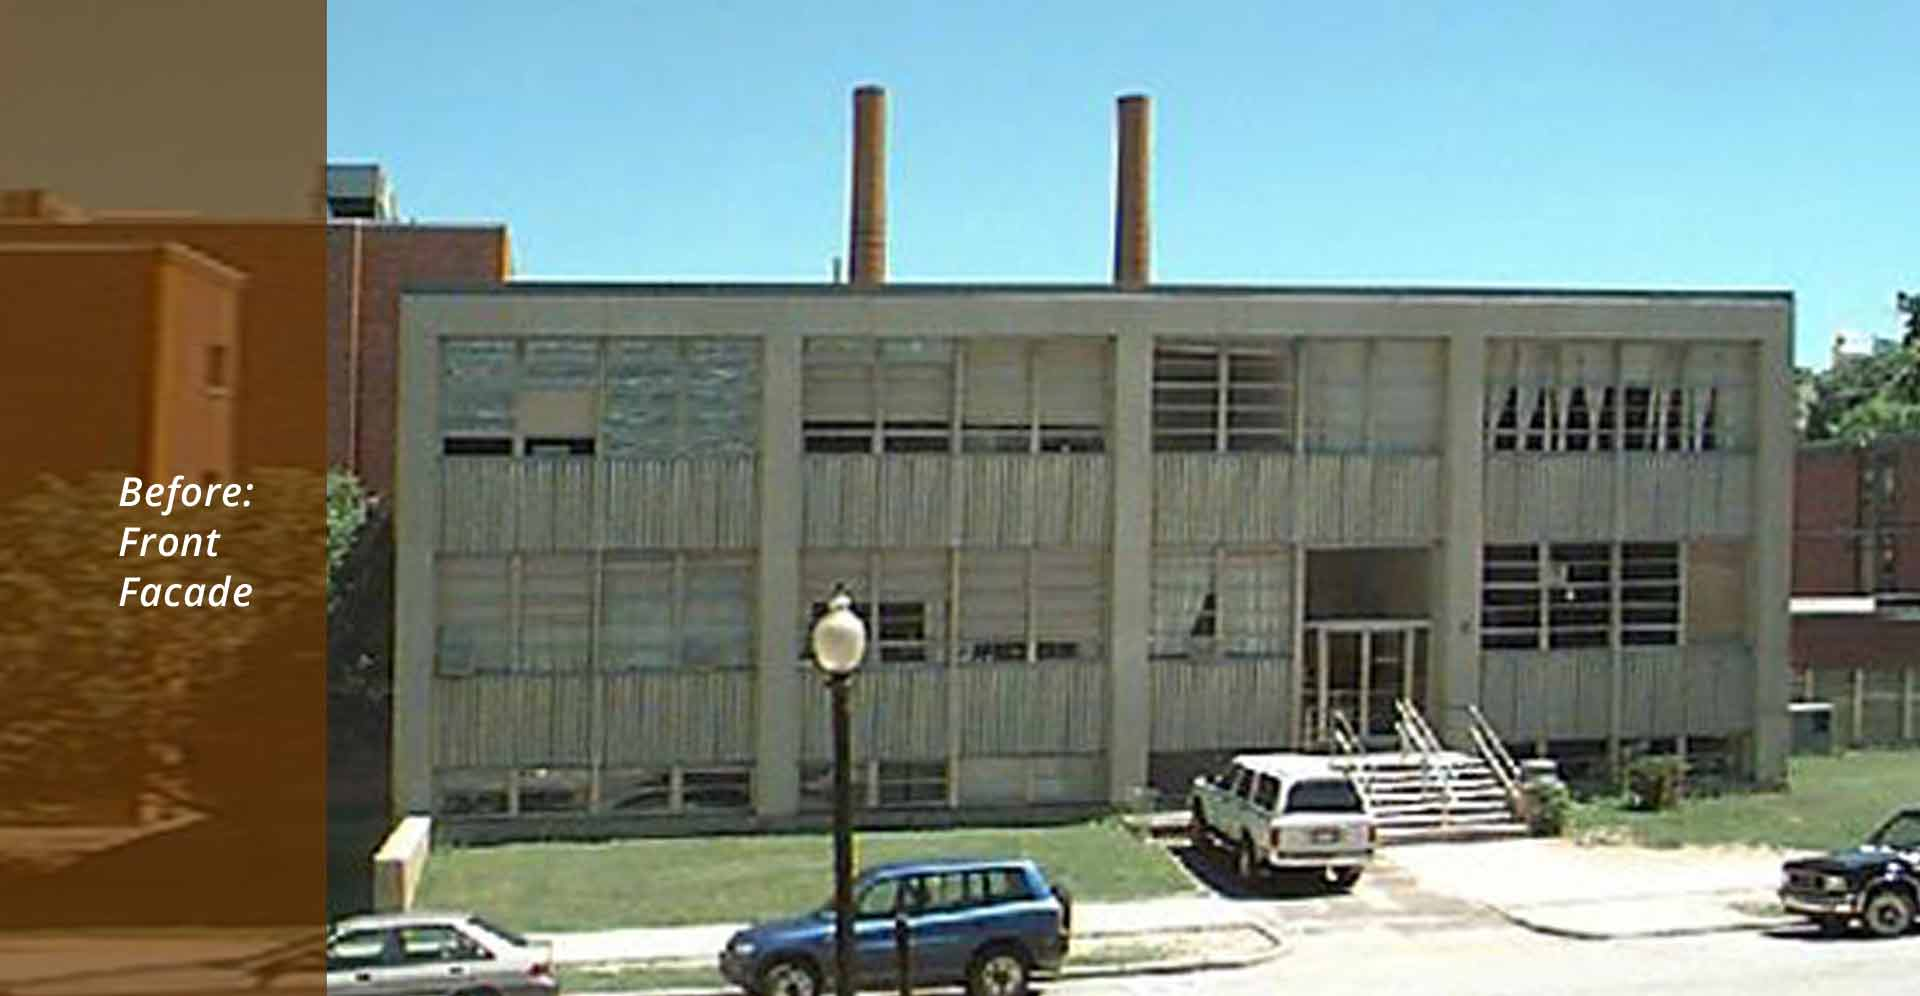 UCONN-ENGINEERING-BUILDING-FACADE-BEFORE.jpg